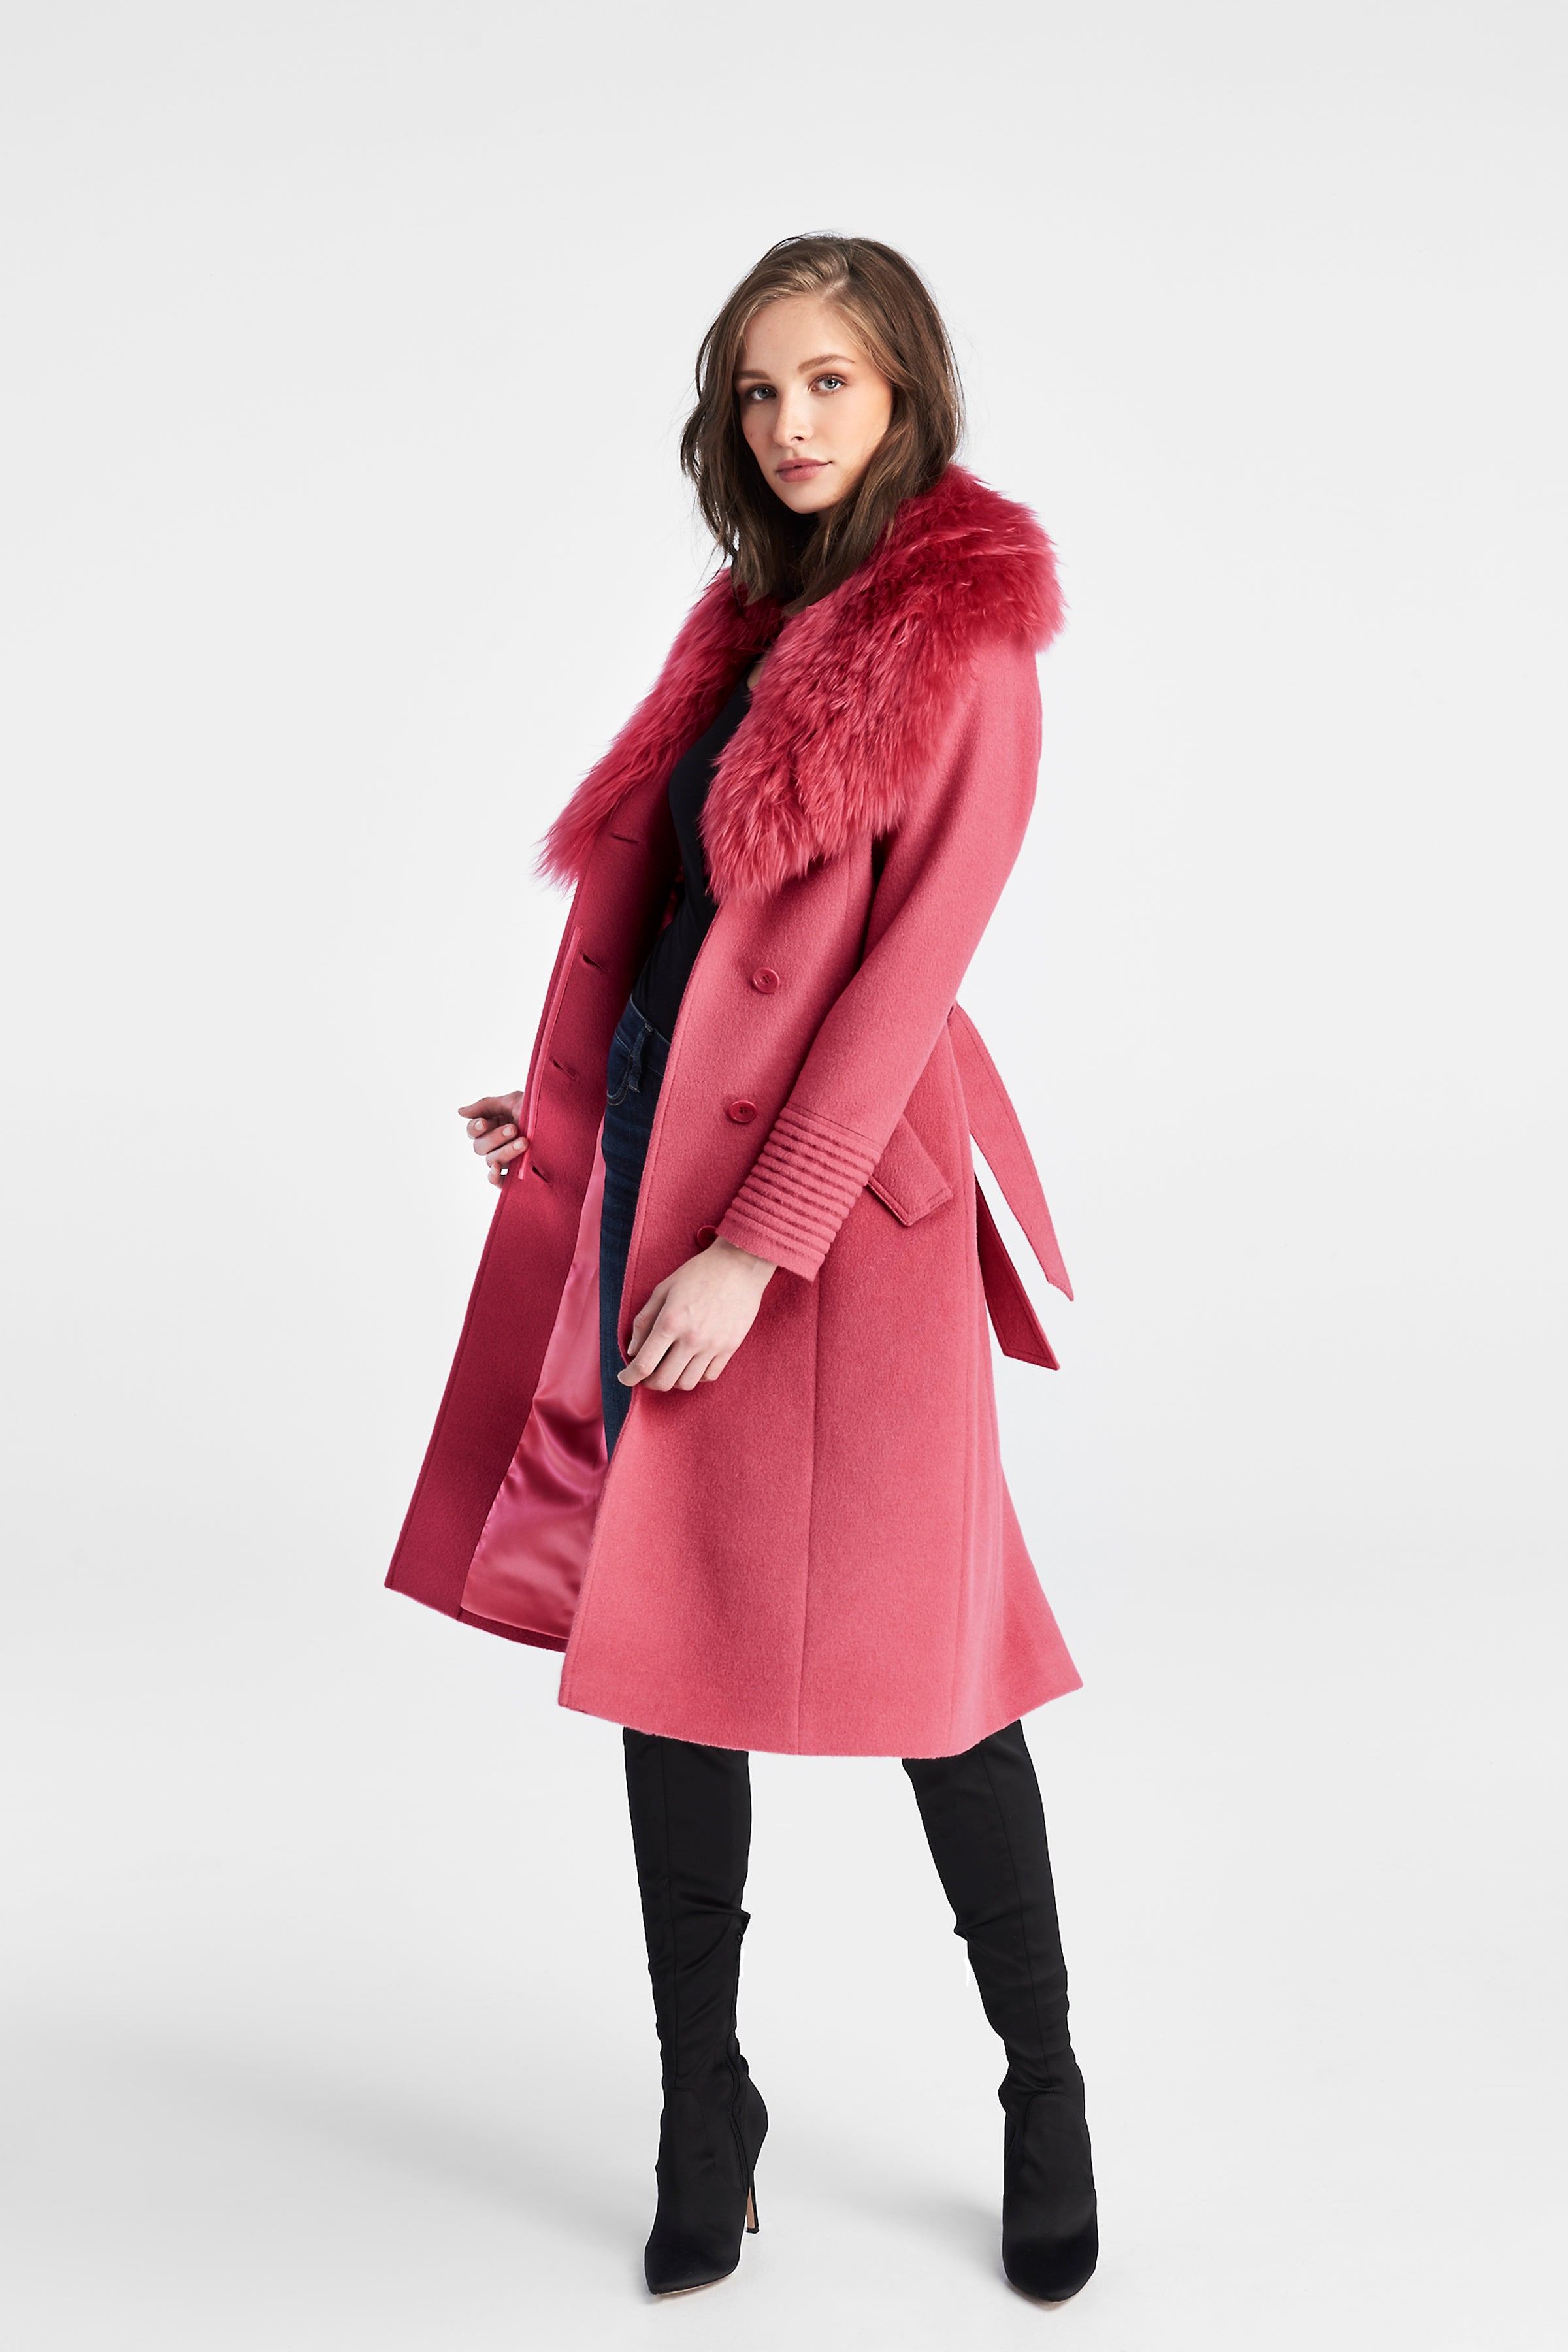 Long Coat with Fur Collar Tourmaline Pink